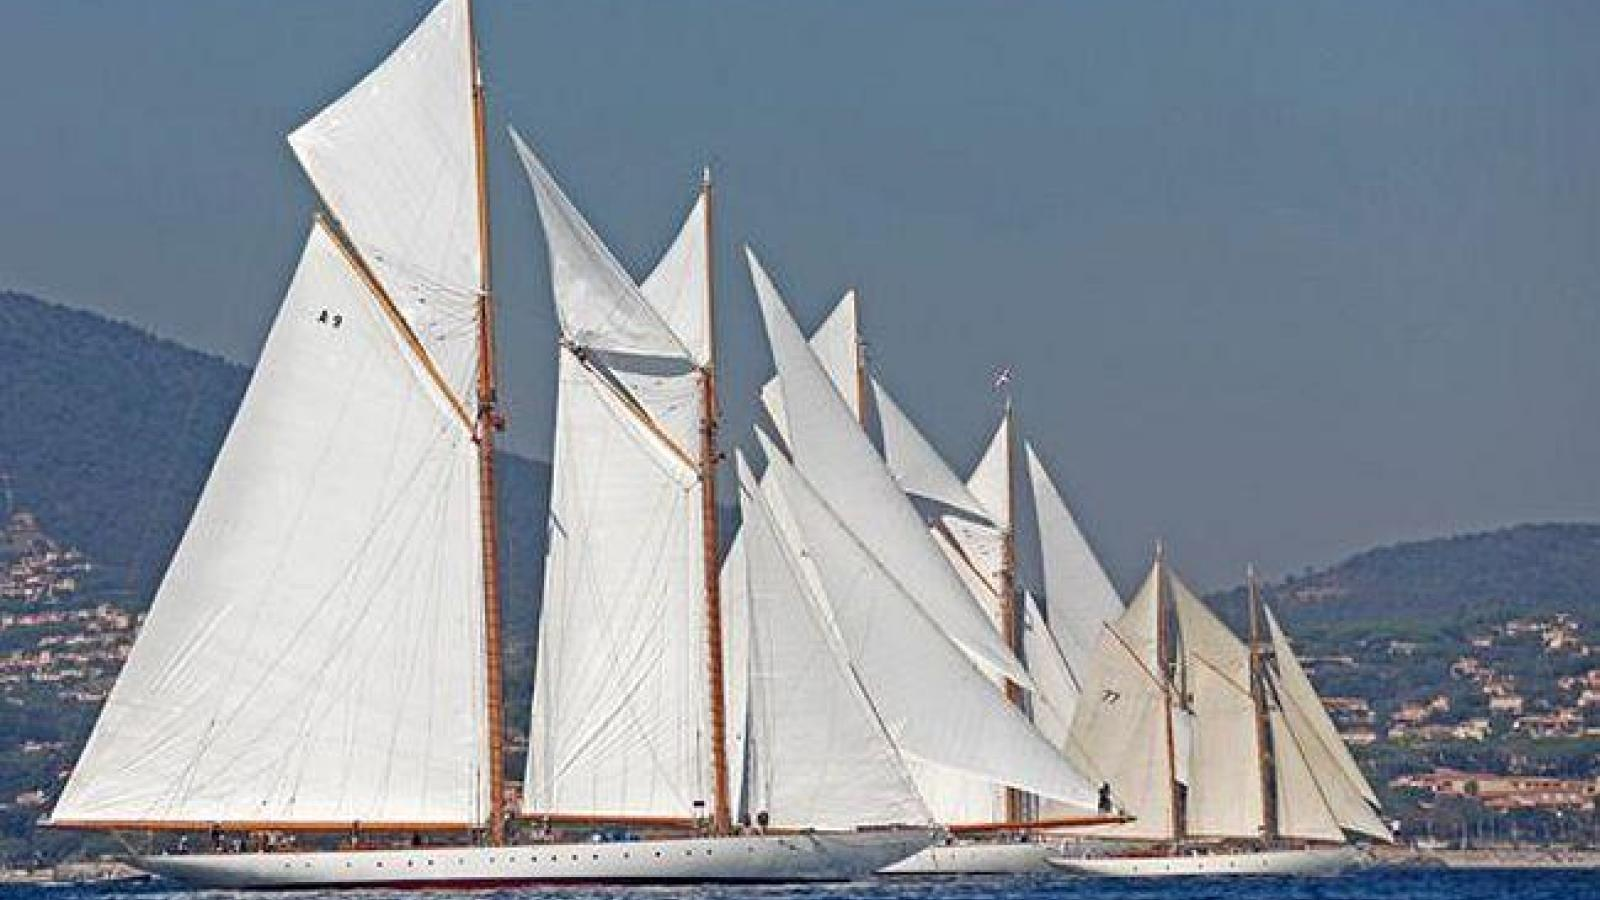 Saint Tropez sailing - a remarkable yachting event